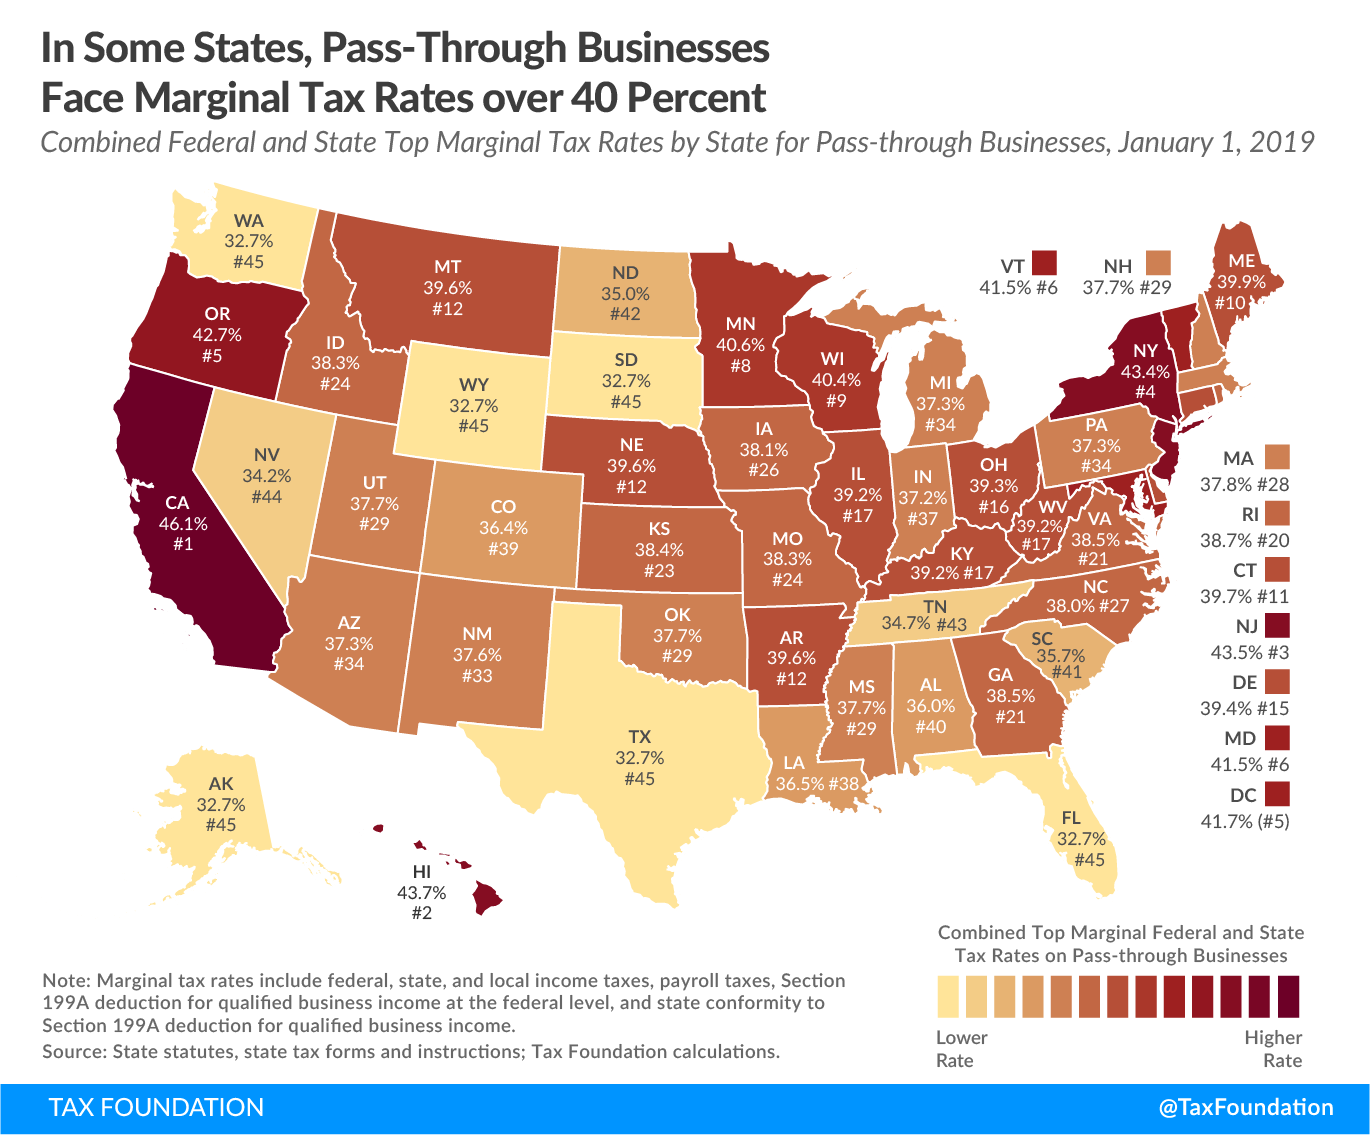 In some states, pass-through businesses face marginal tax rates over 40 percent, pass-through business federal and state tax rate, pass-through business tax, pass-through businesses, private sector employment